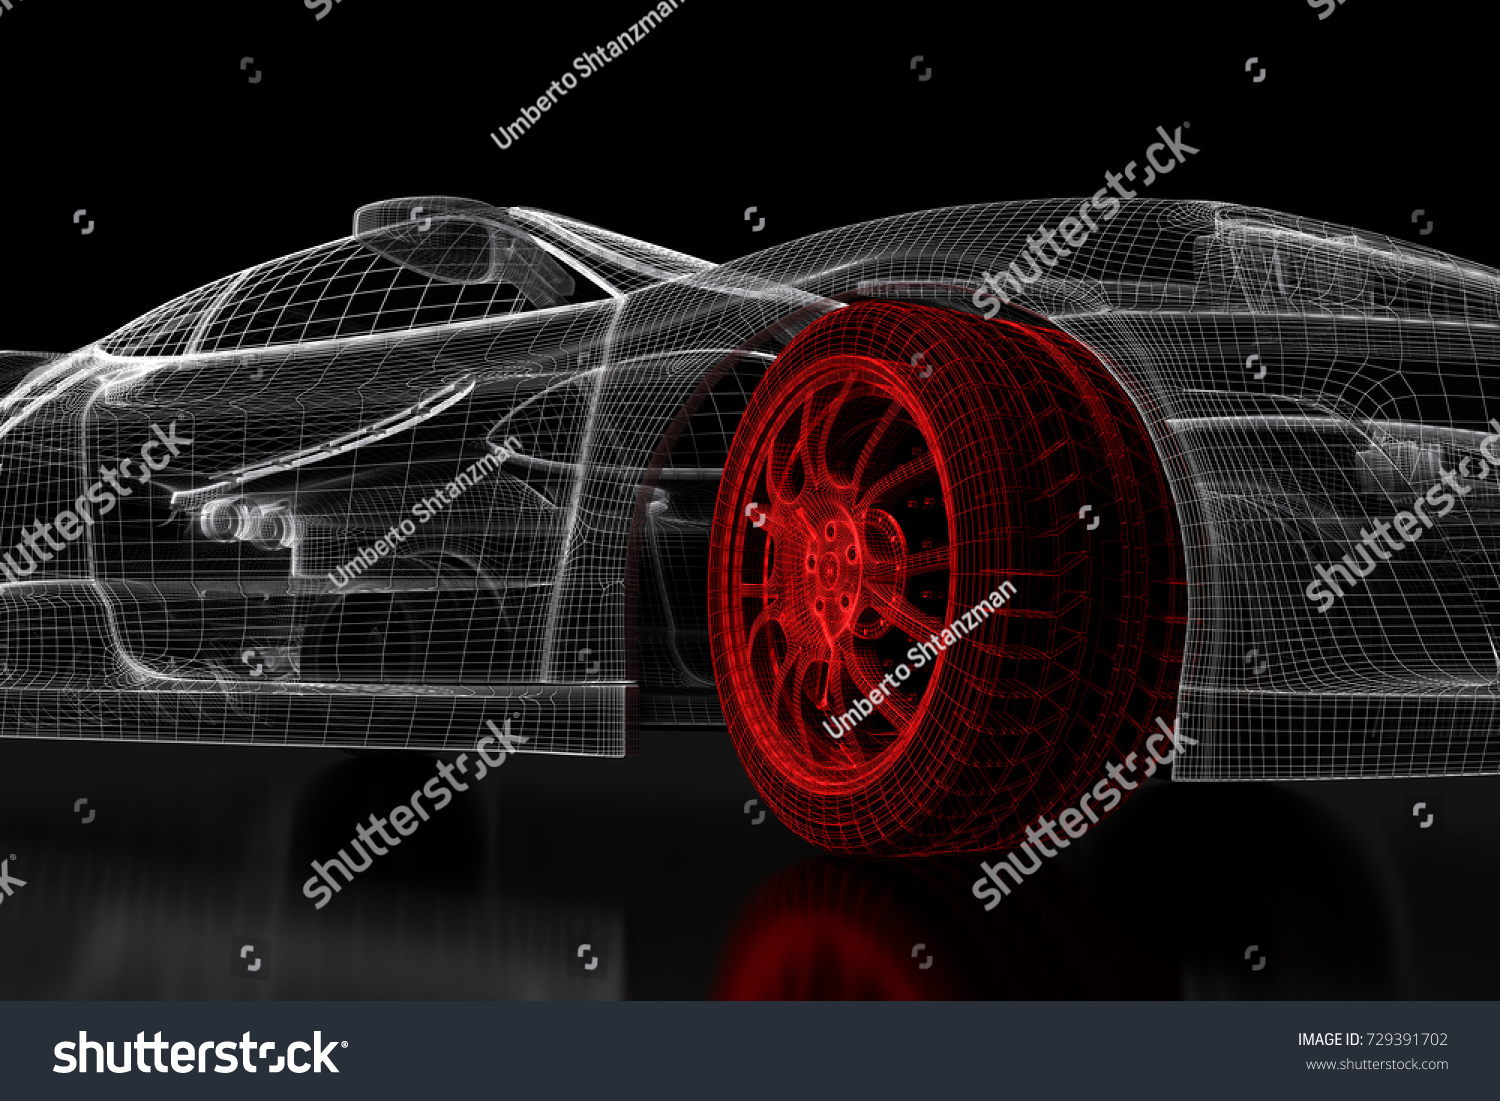 Car vehicle 3 d blueprint mesh model stock illustration 729391702 car vehicle 3d blueprint mesh model with a red wheel tire on a black background malvernweather Gallery